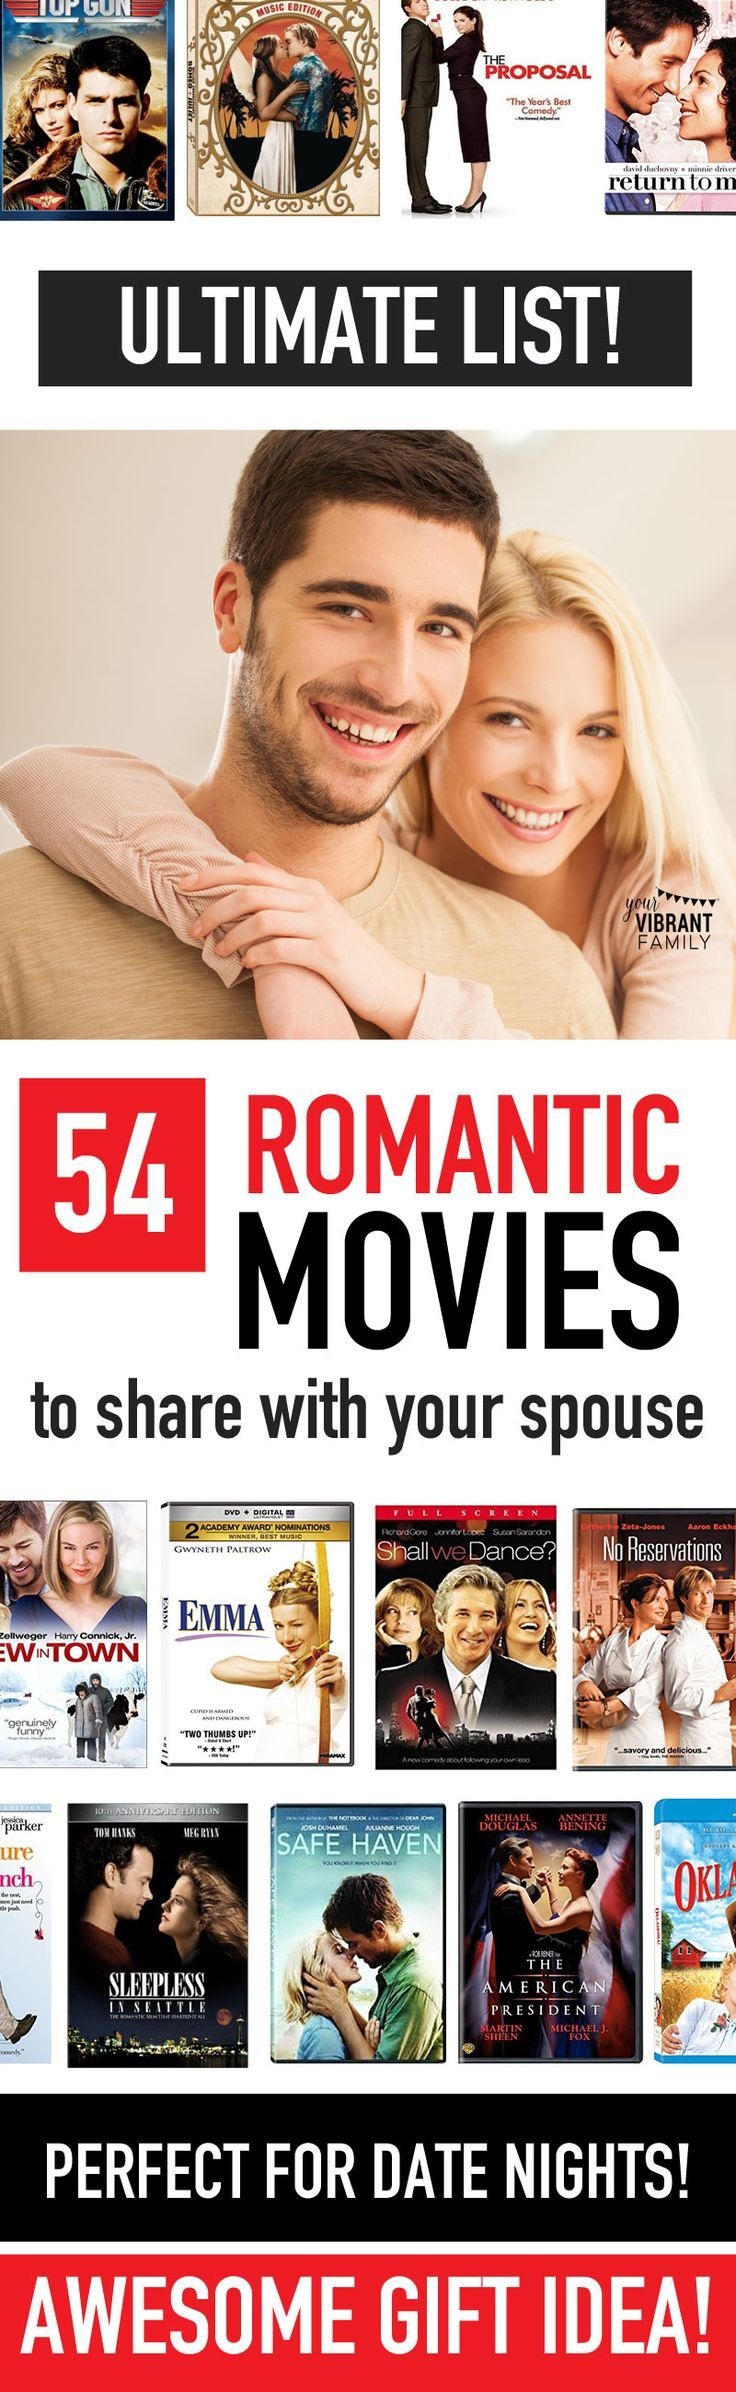 LOVE! Great list of awesome romantic movies to share with your husband or wife! Perfect for Valentine's Day, anniversaries, at home date nights or any time you want to watch a romantic movie with your spouse! Are your favorites here too?